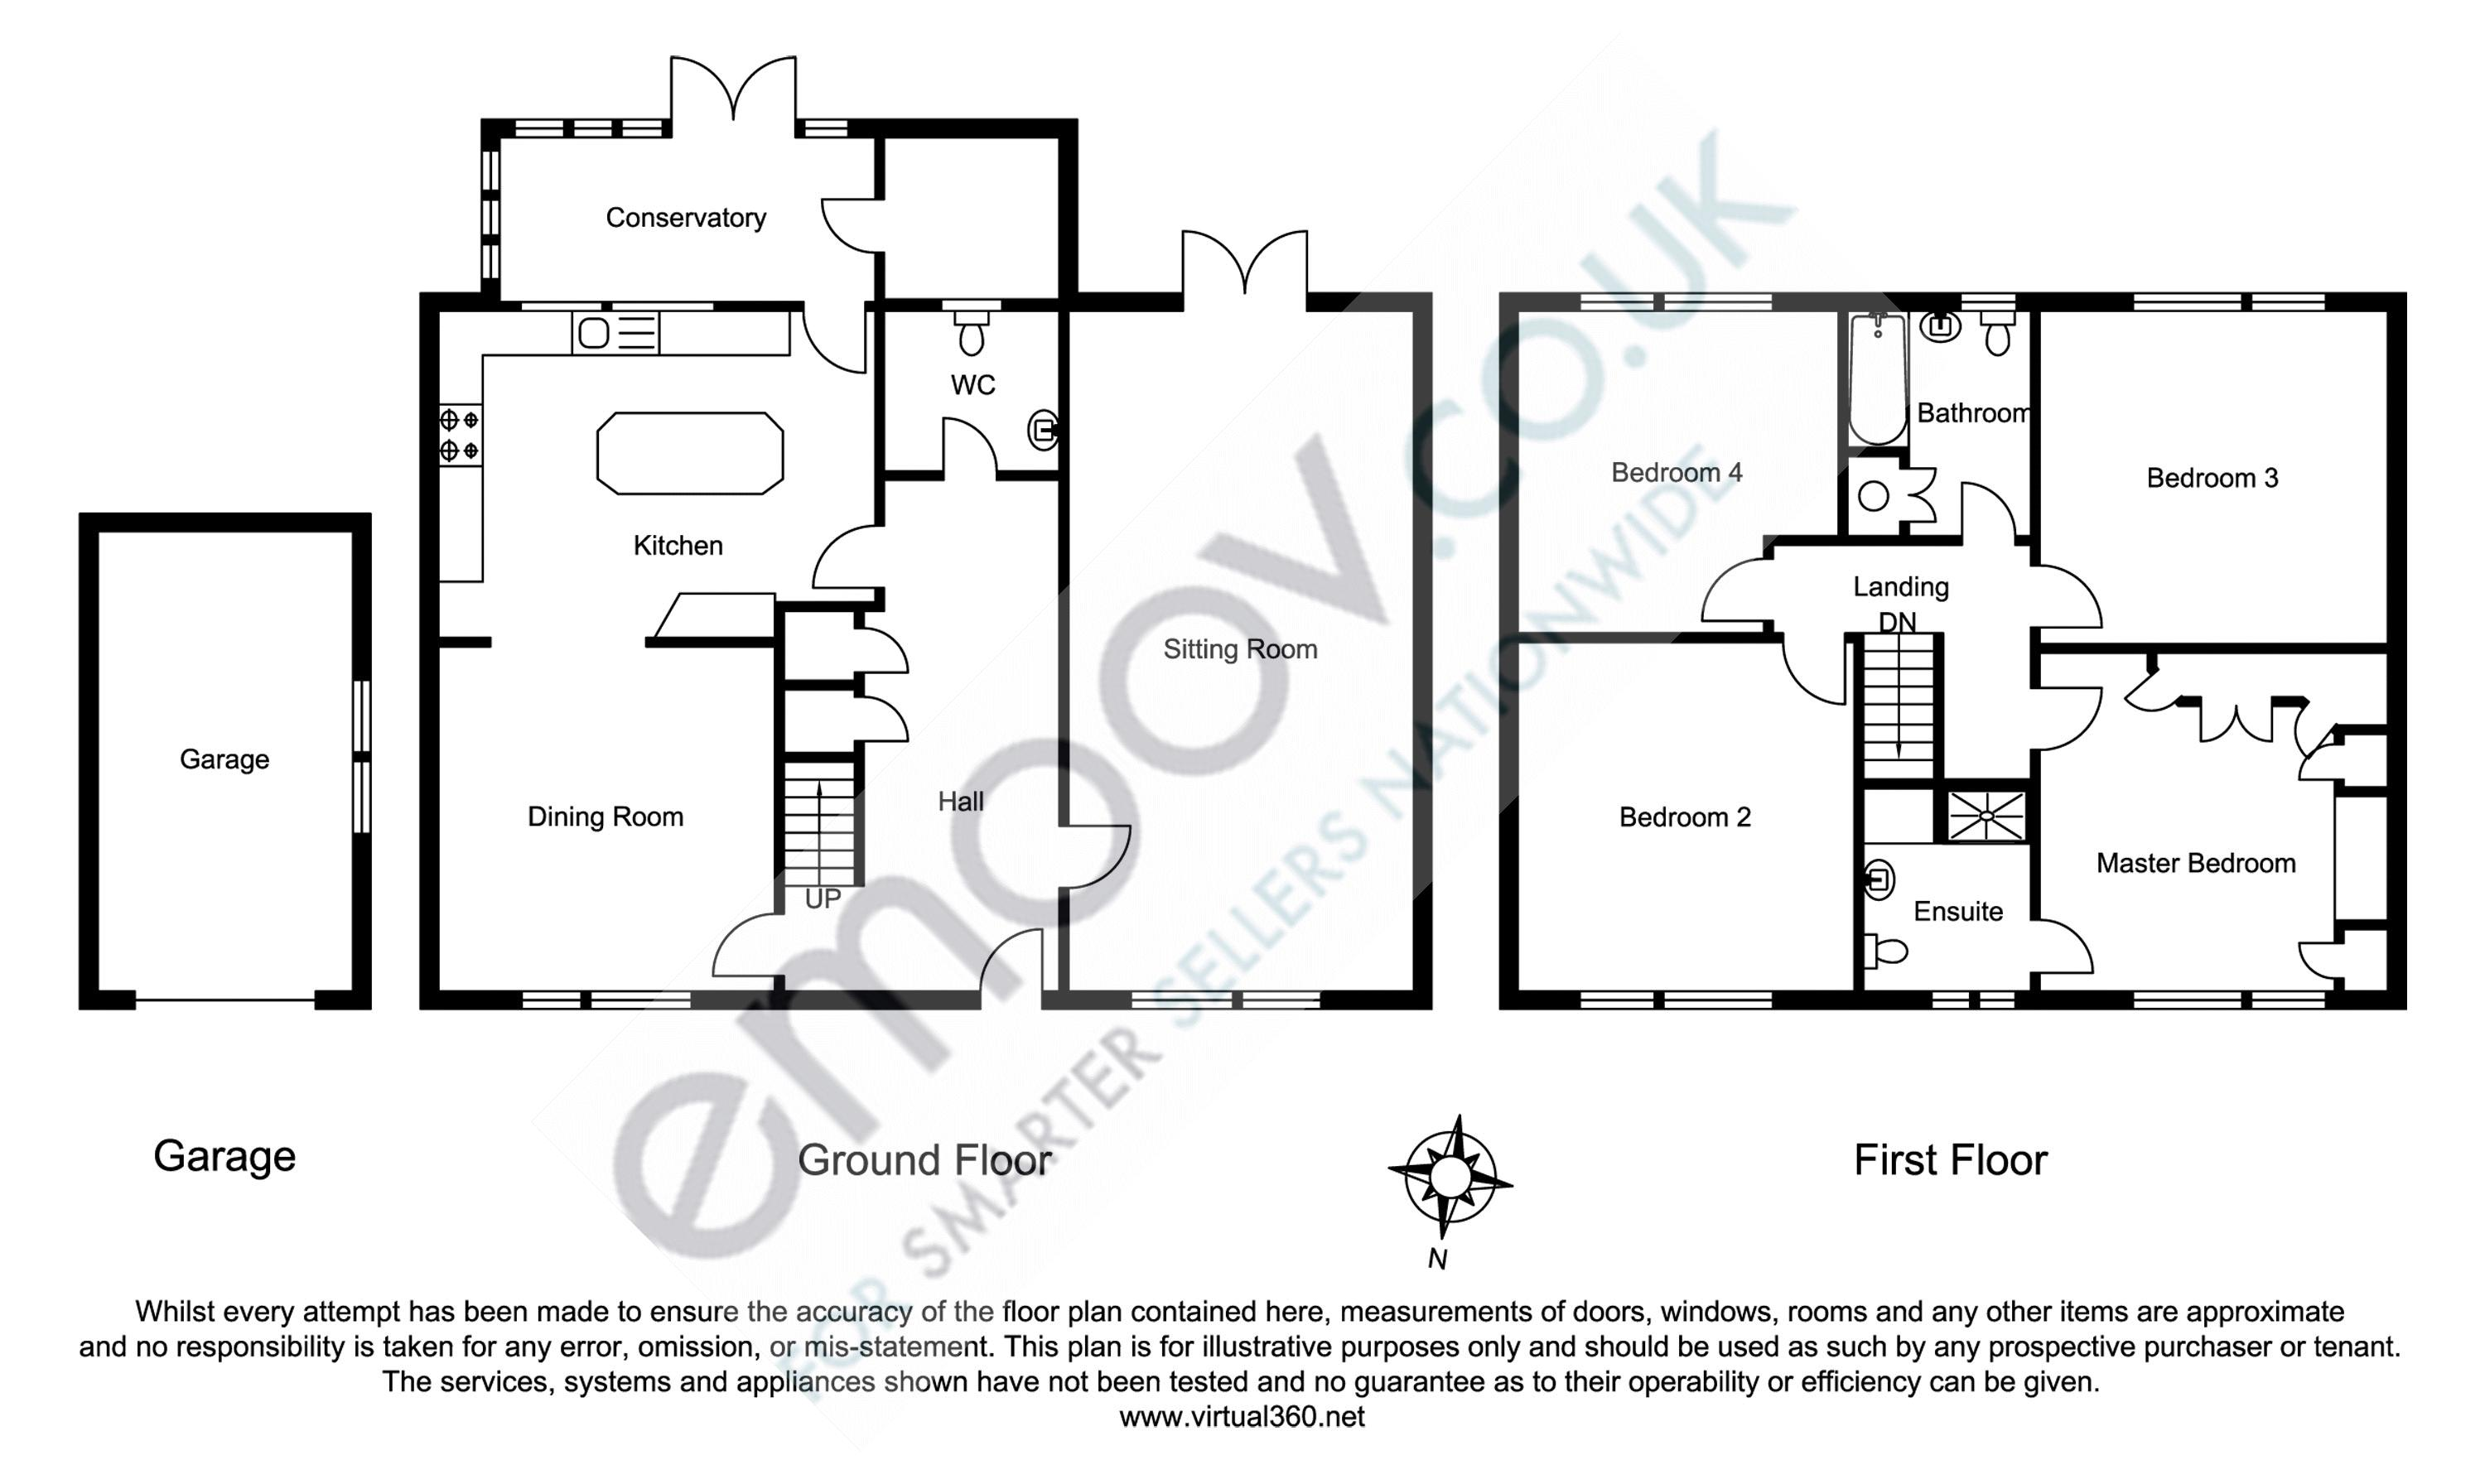 Trundle Lane, Fishlake, Doncaster floor plan